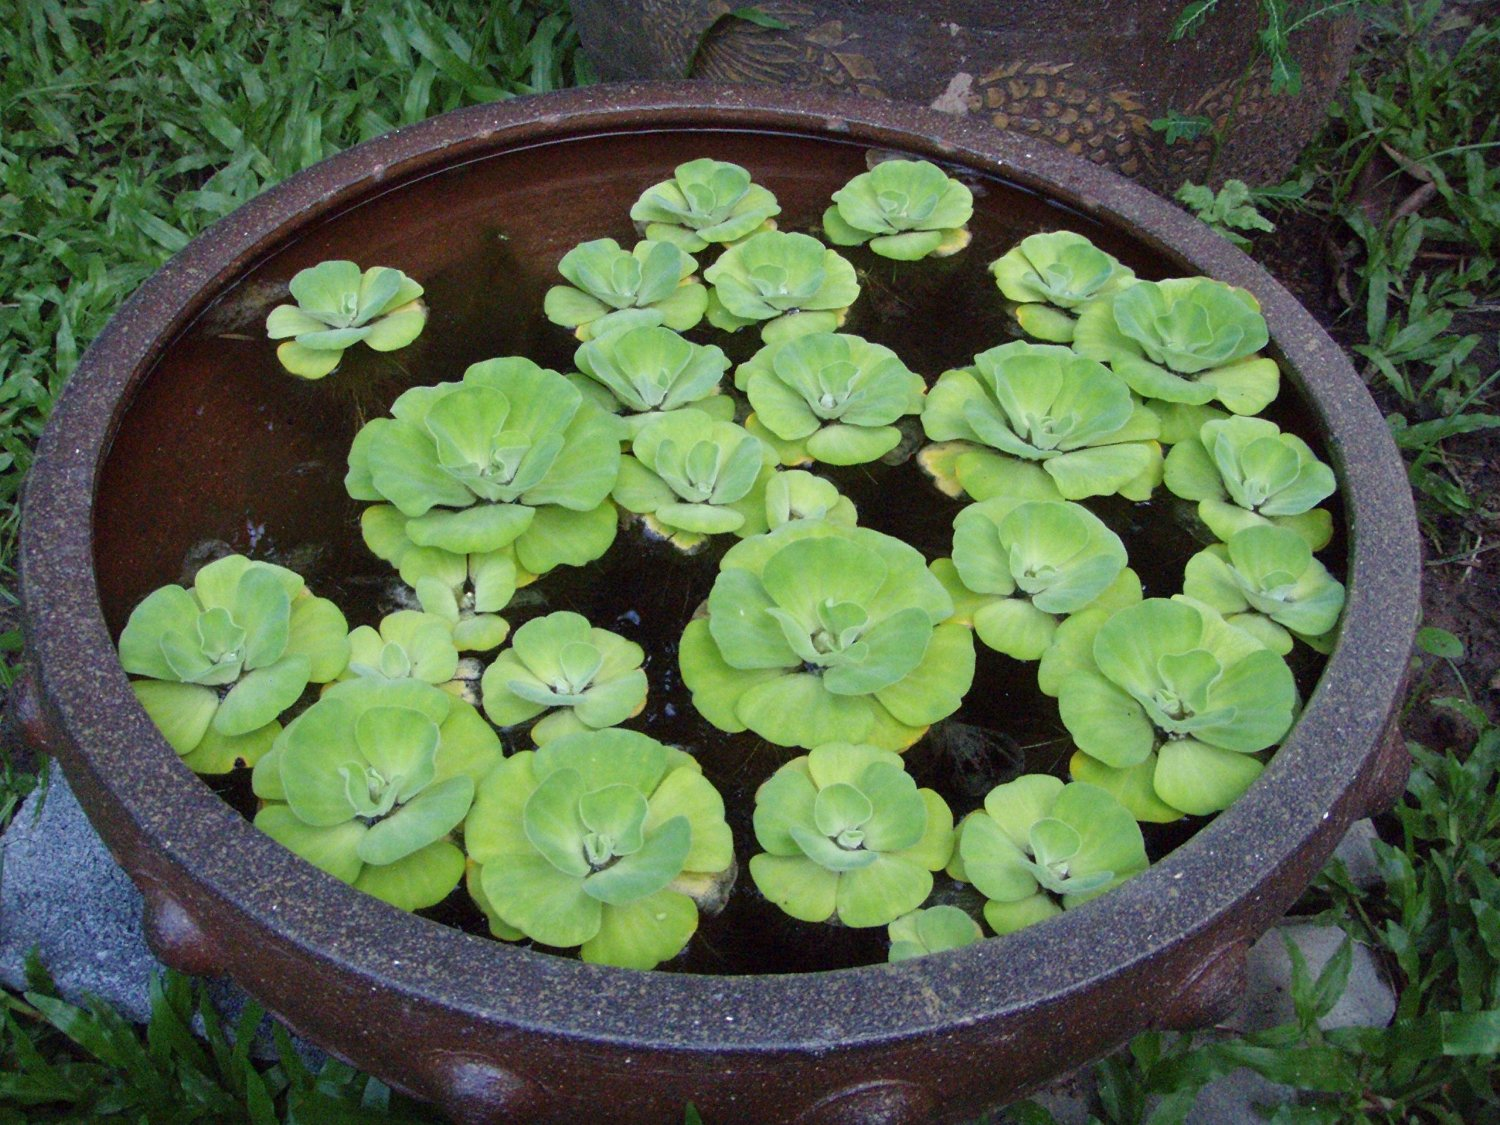 Water lettuce floating live pond plants aquarium plants for Using pond water for plants